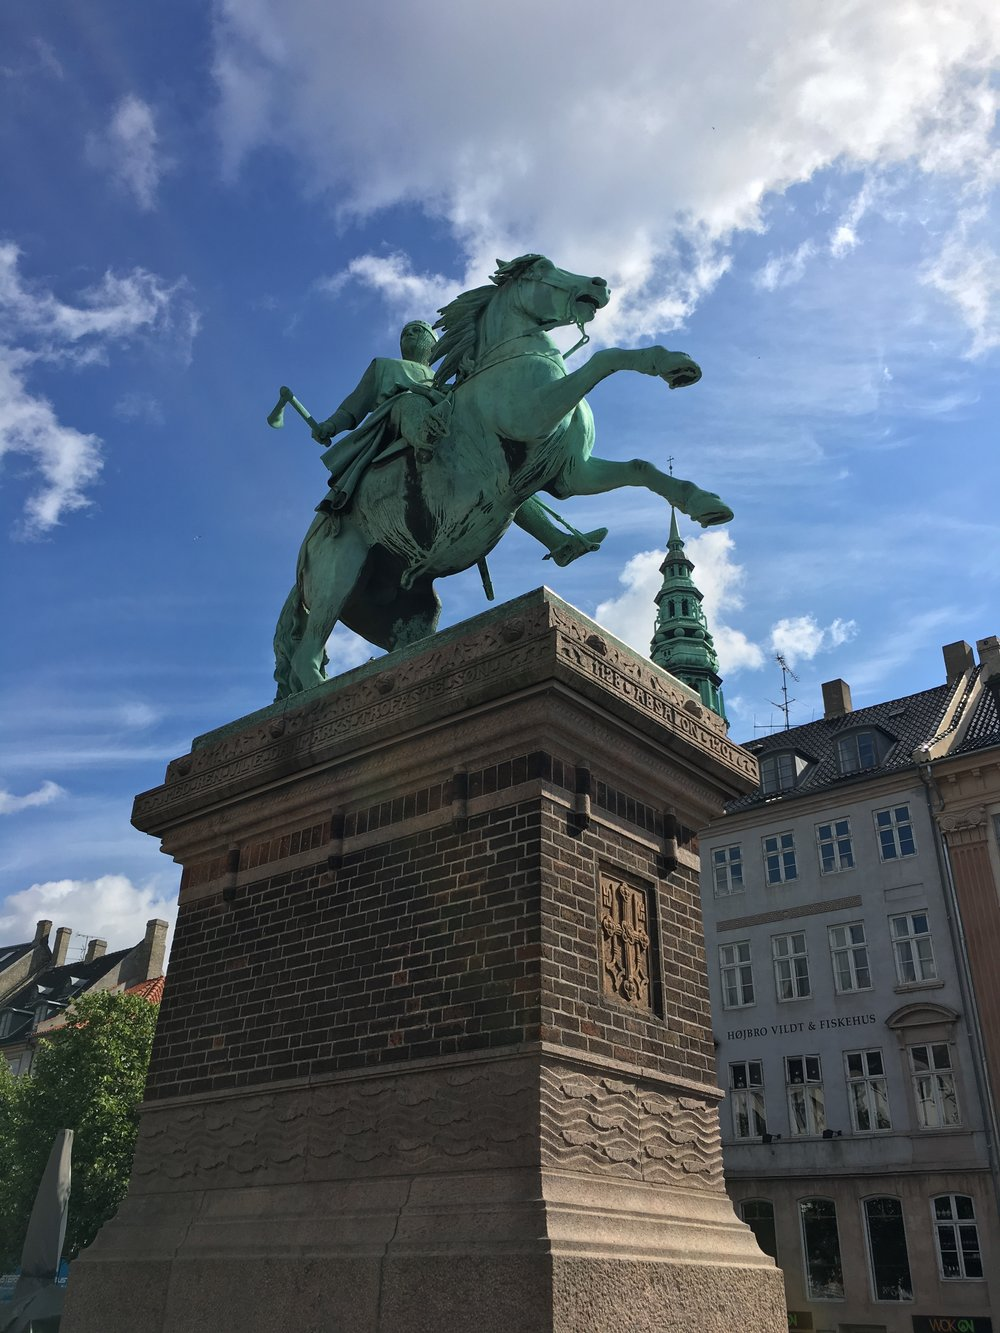 The Absalon Statue on Højbro Plads, central Copenhagen.